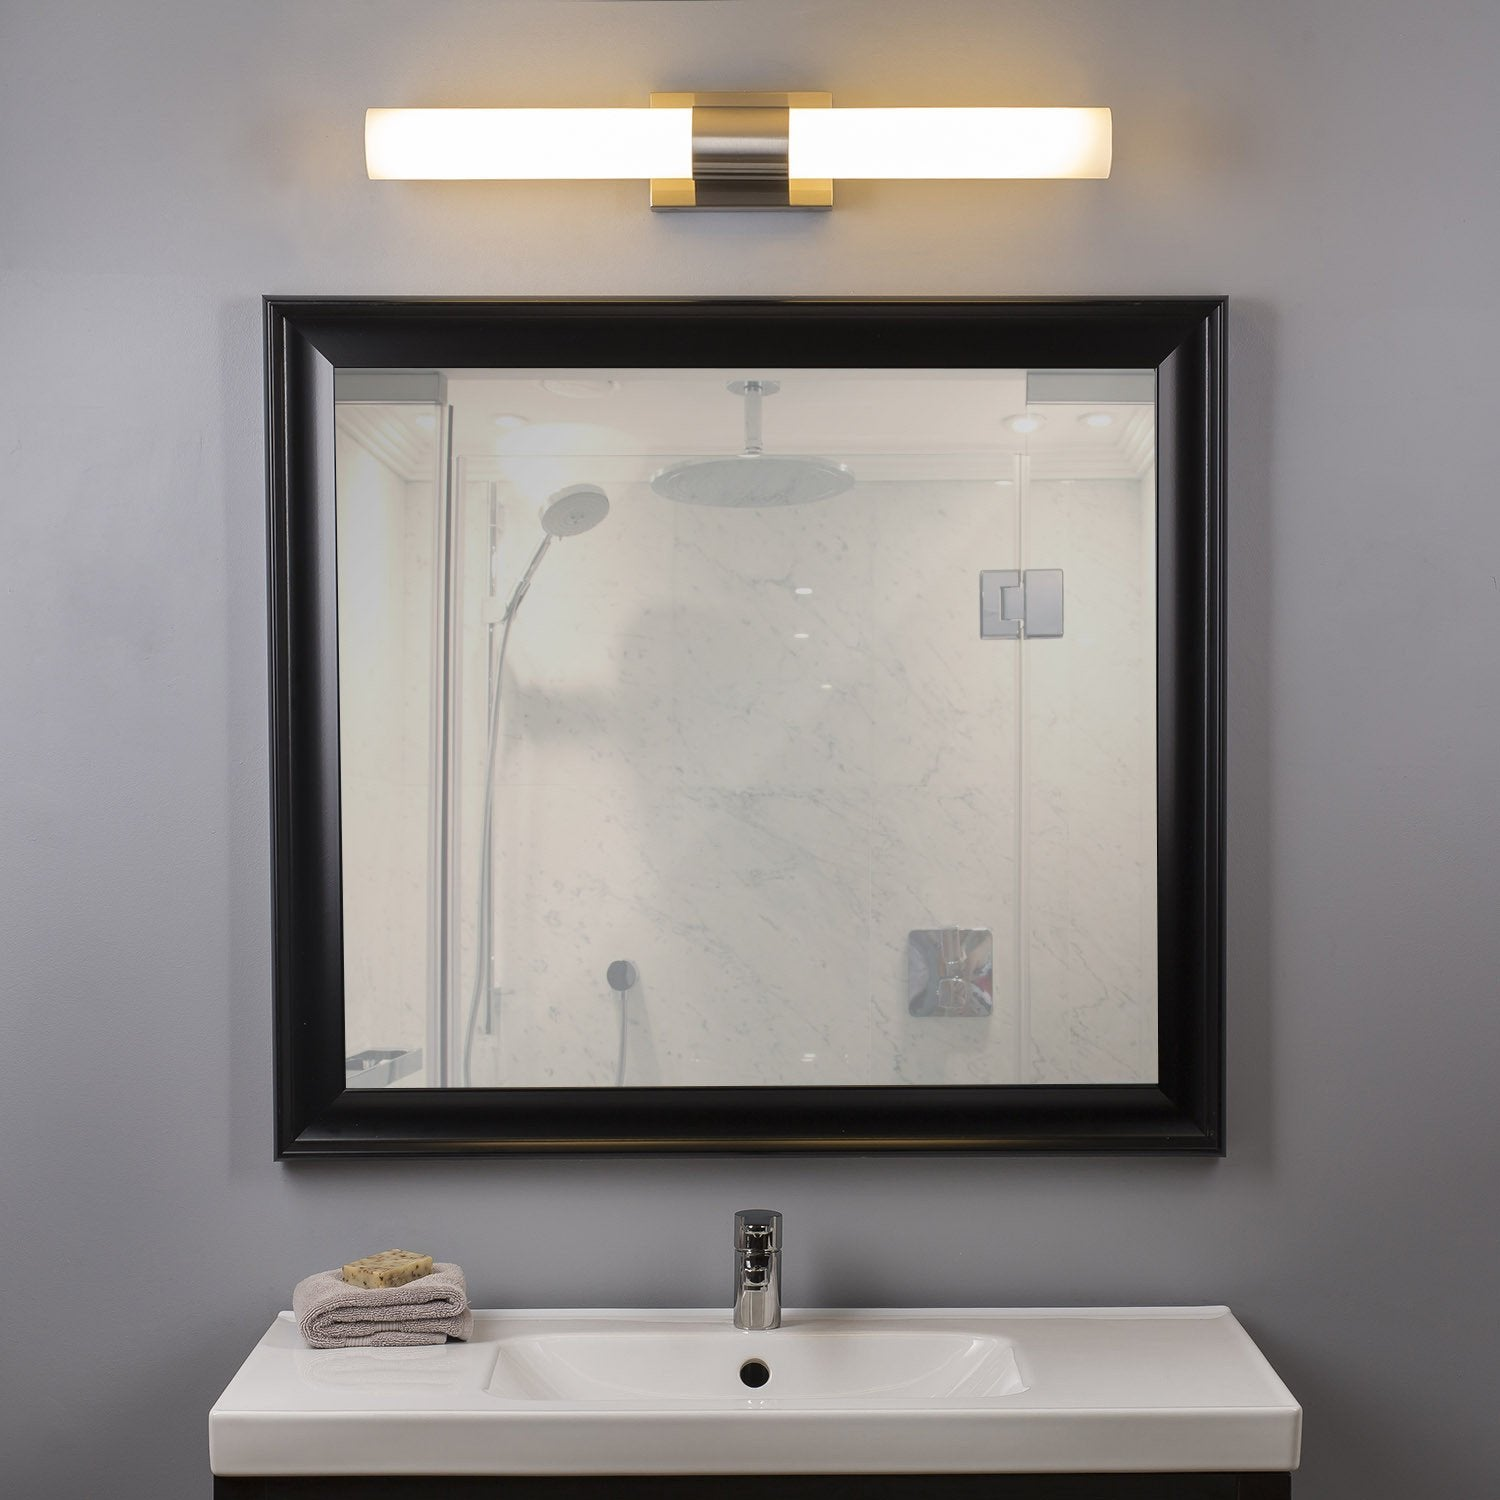 Perpetua 30-inch LED Vanity Fixture 39.5W Dimmable Warm Soft Light ...